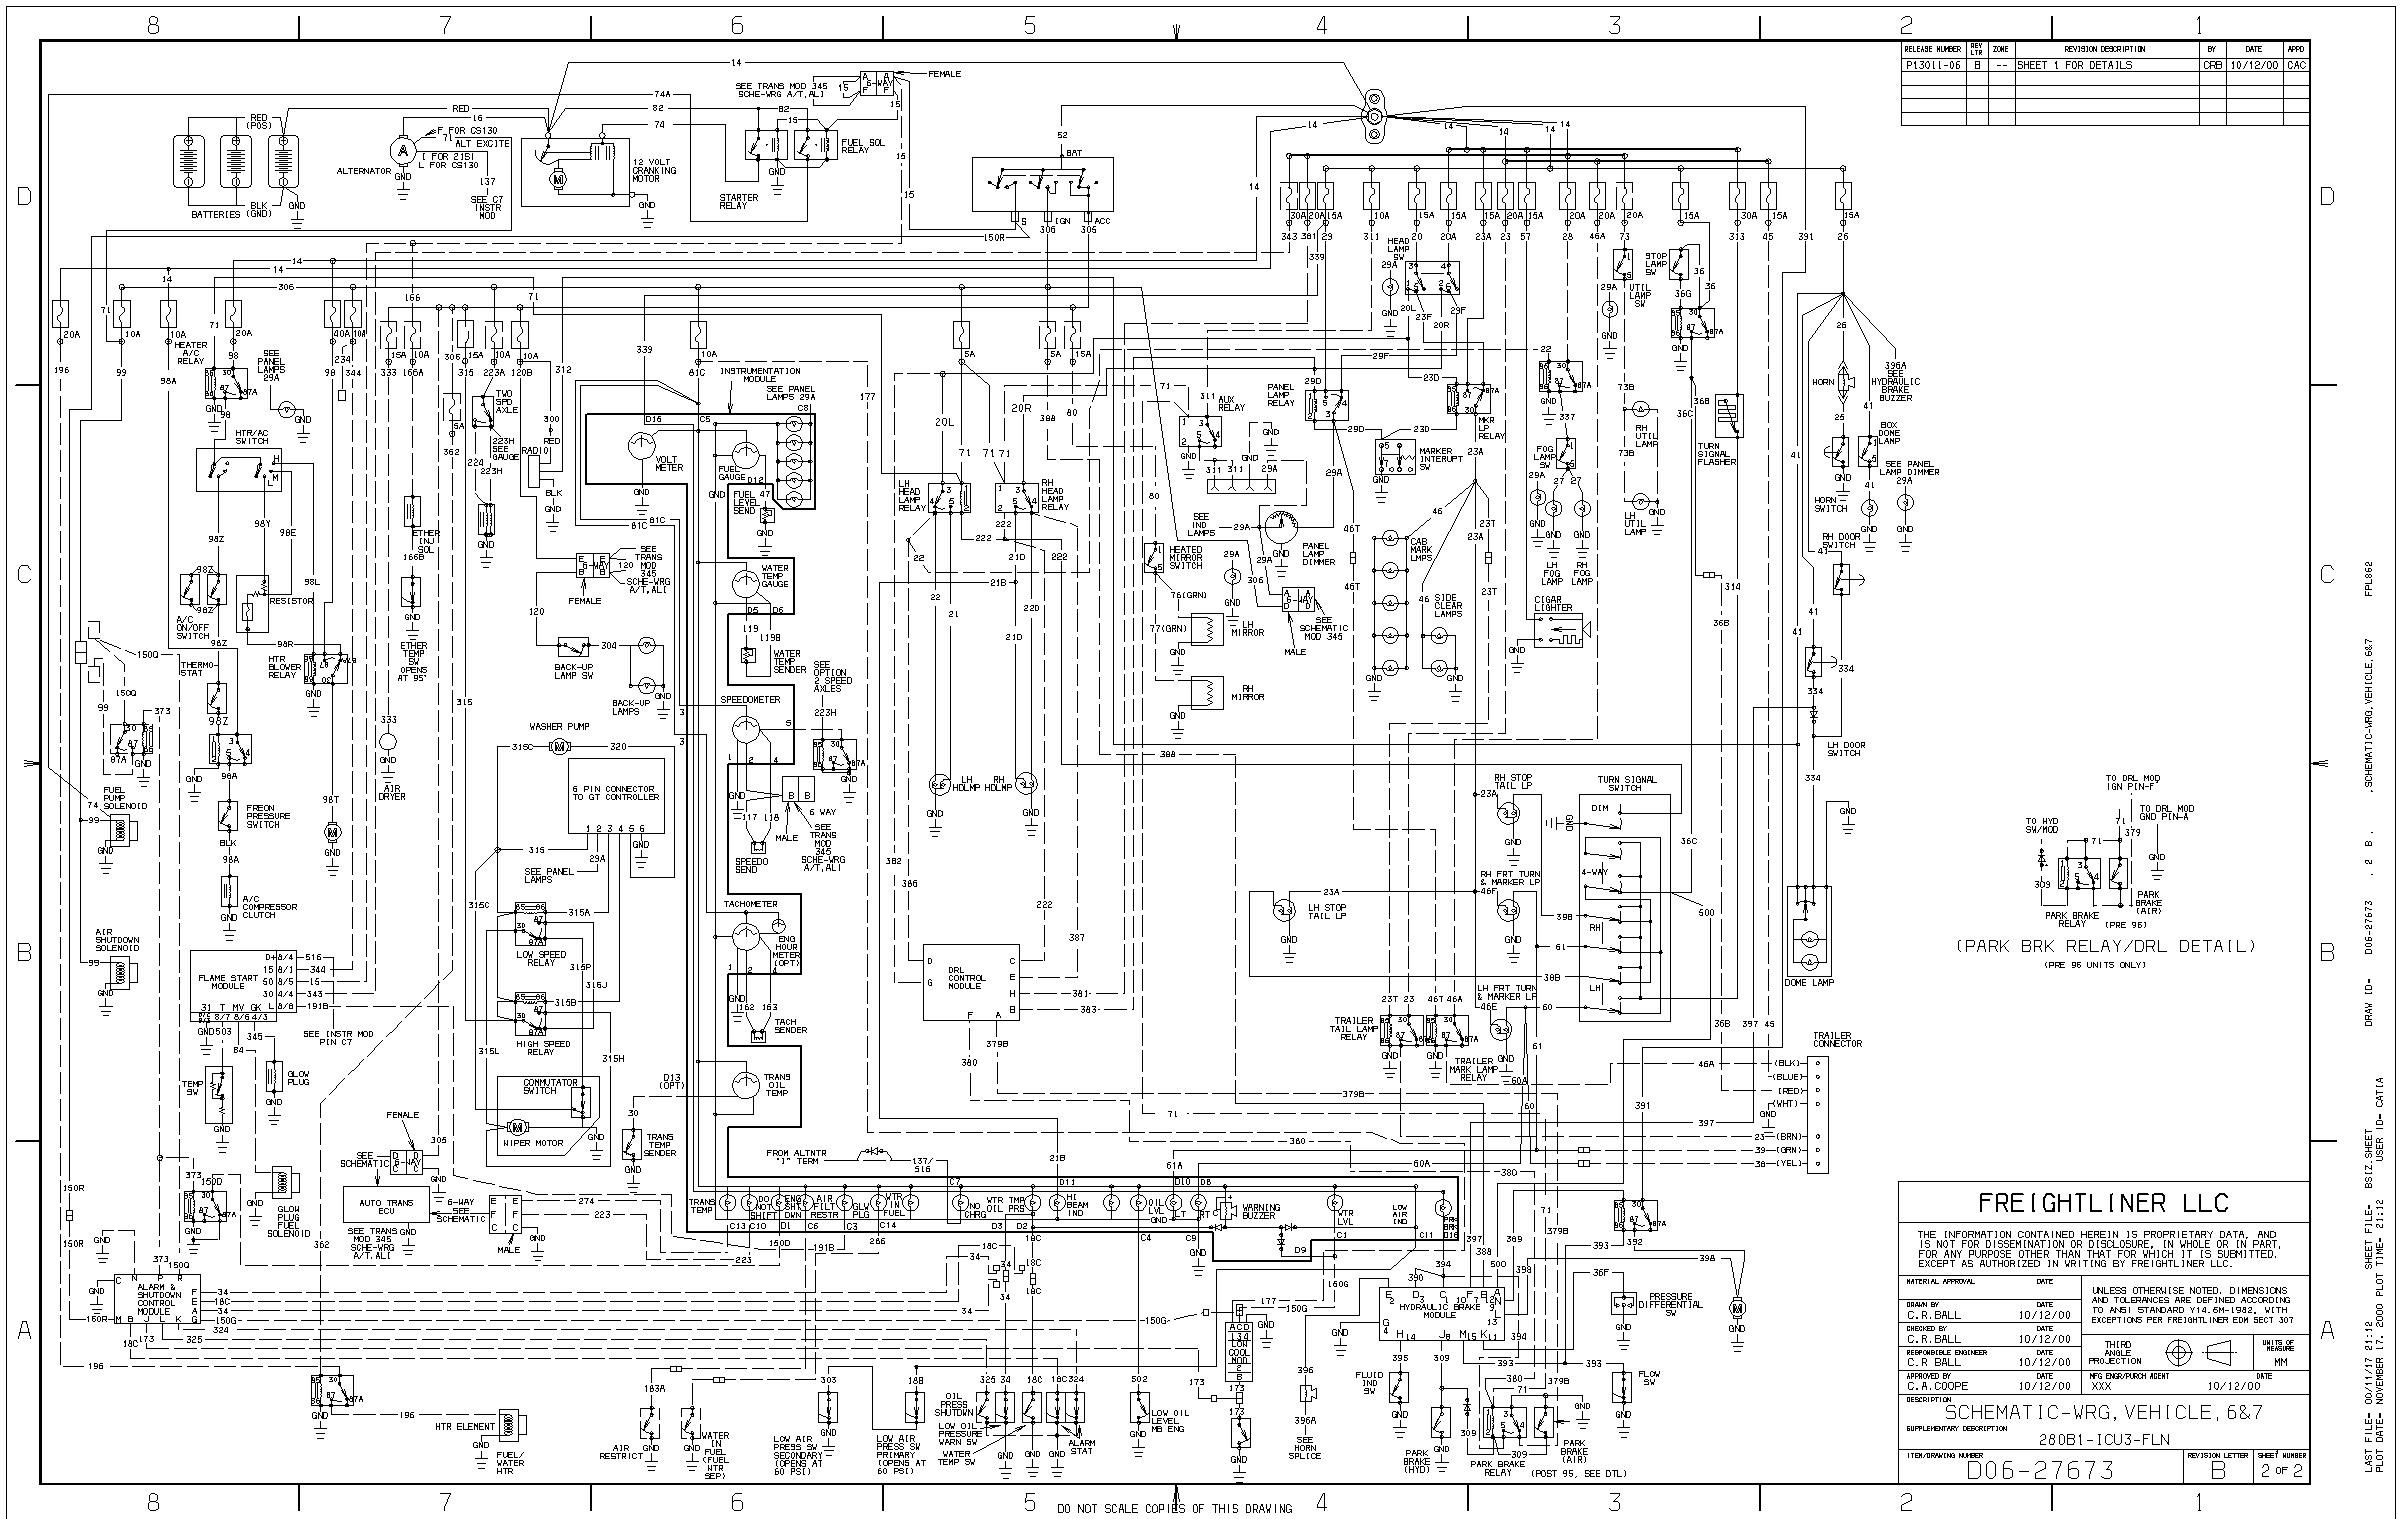 Sterling Truck Wiring Diagrams Wiring Diagram Sterling Truck Wiring Diagrams 2003 toyota Camry 2 4 Of Sterling Truck Wiring Diagrams